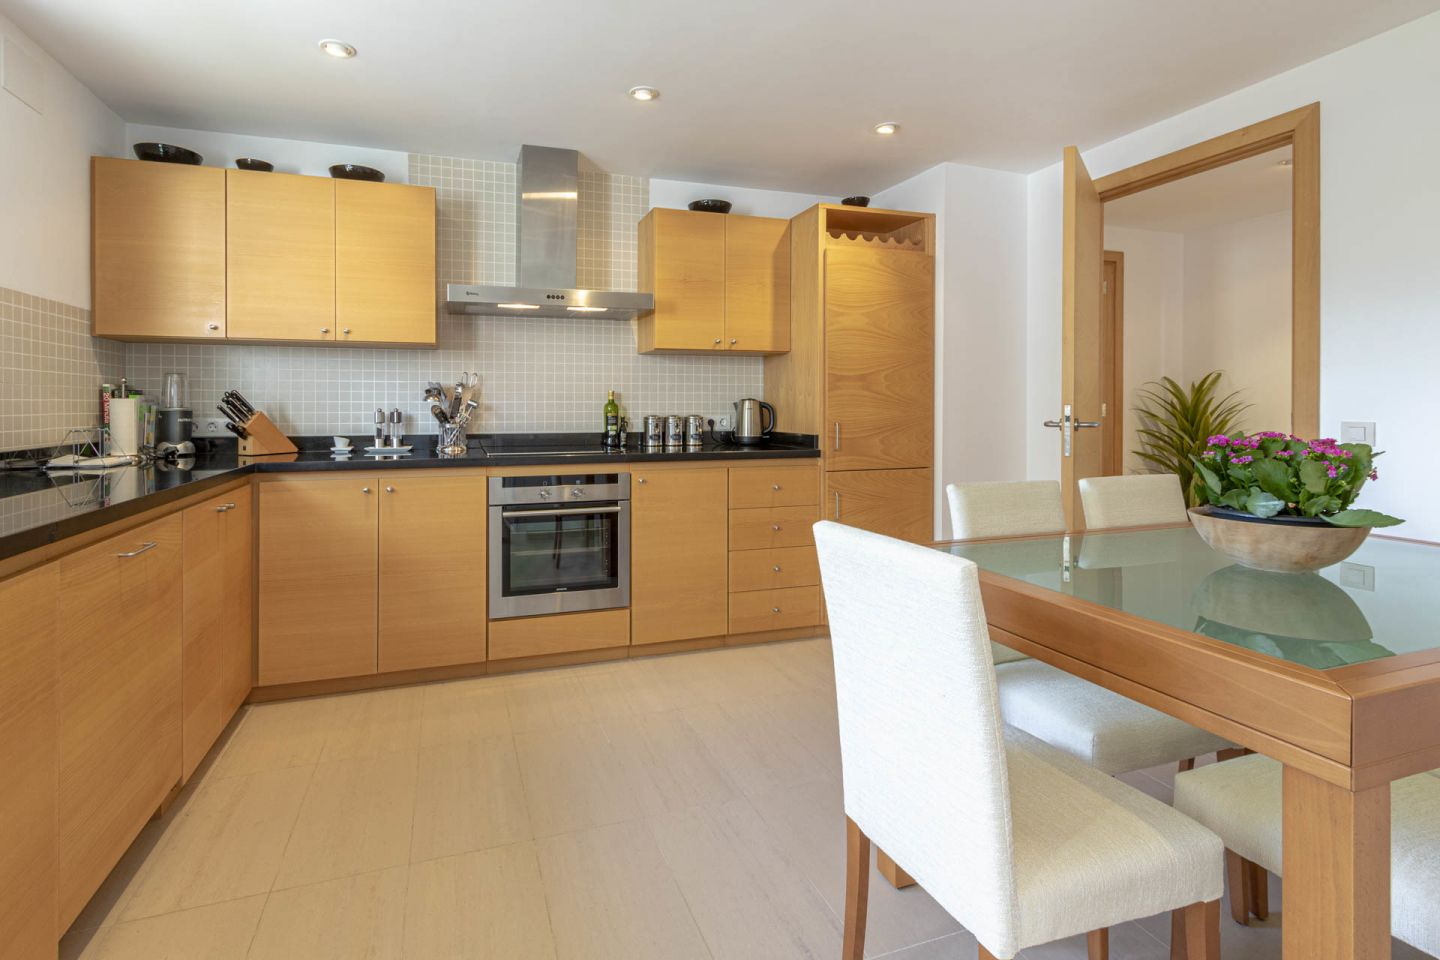 4 Bed Apartment for sale in PUERTO POLLENSA 2